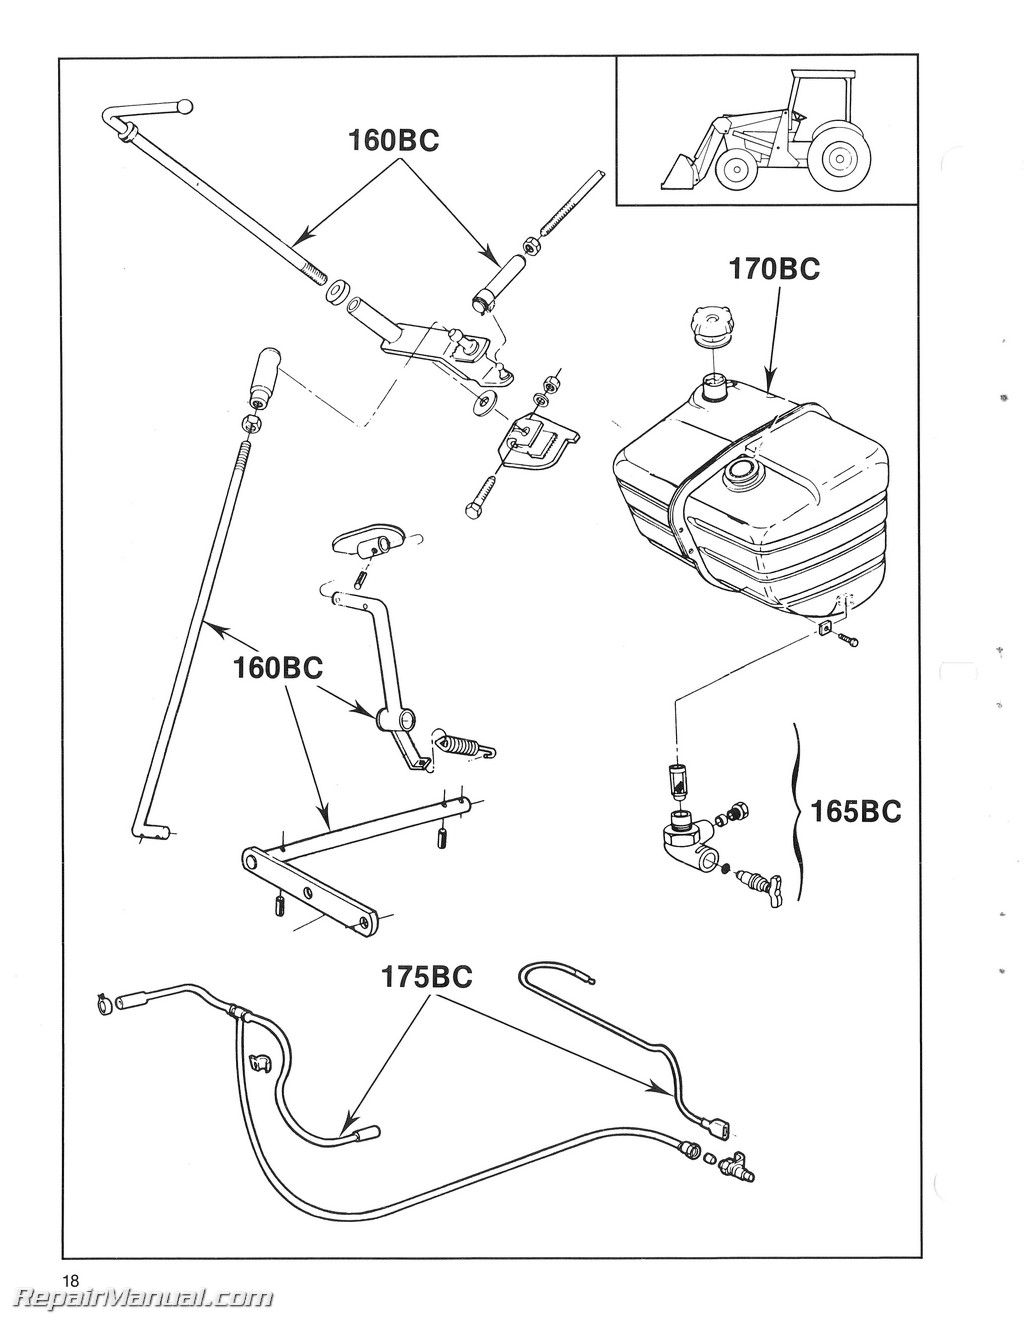 Ford 545 Tractor Wiring Diagram Tech Tips Diagrams Images Gallery